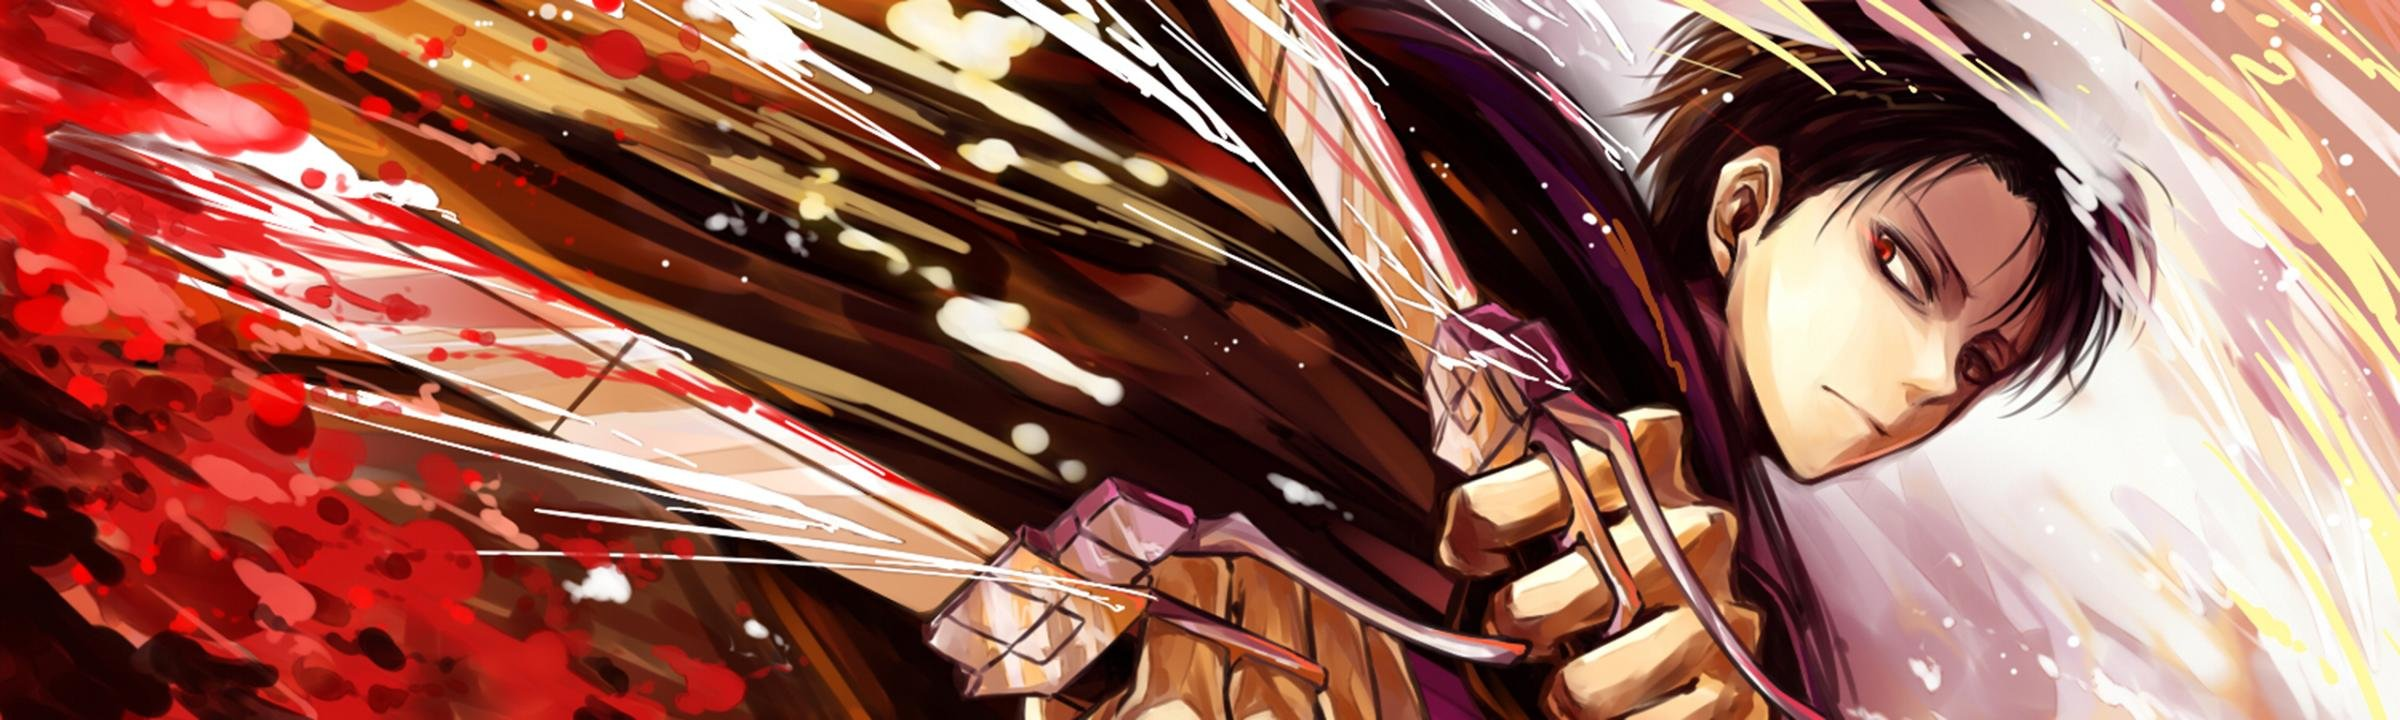 Download dual monitor 2400x720 Levi Ackerman PC background ID:206284 for free